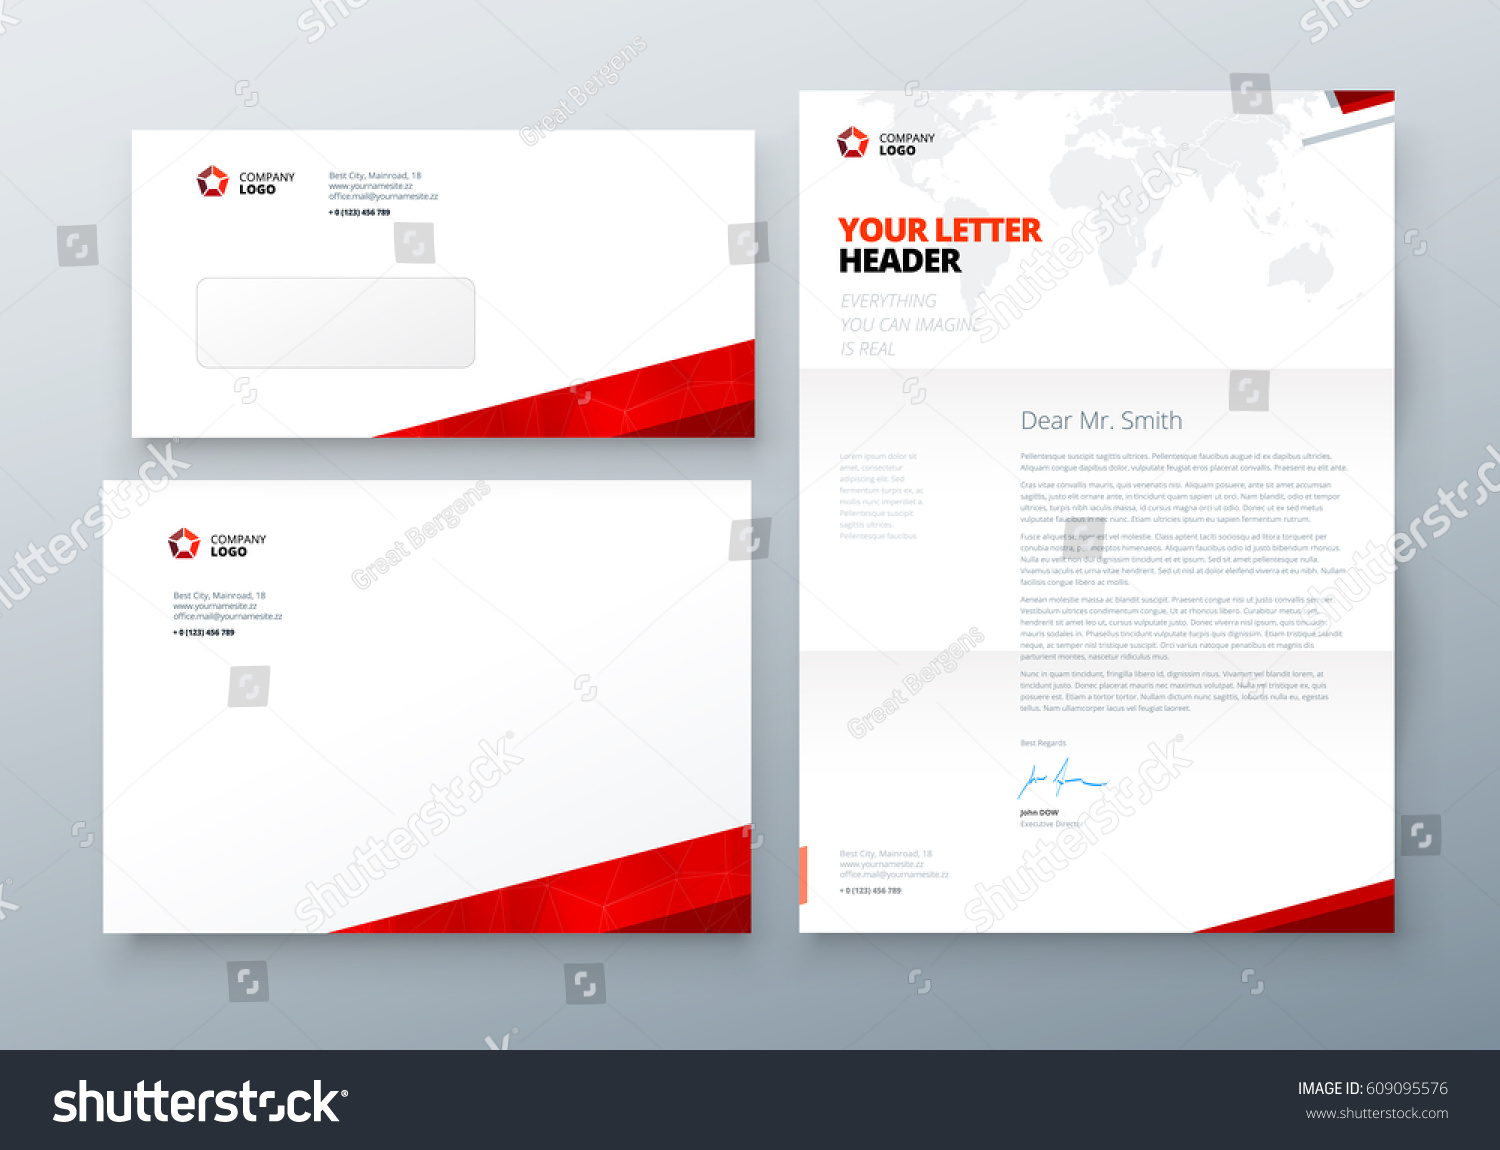 Envelope Dl C 5 Letterhead Red Corporate Stock Vector Royalty Free